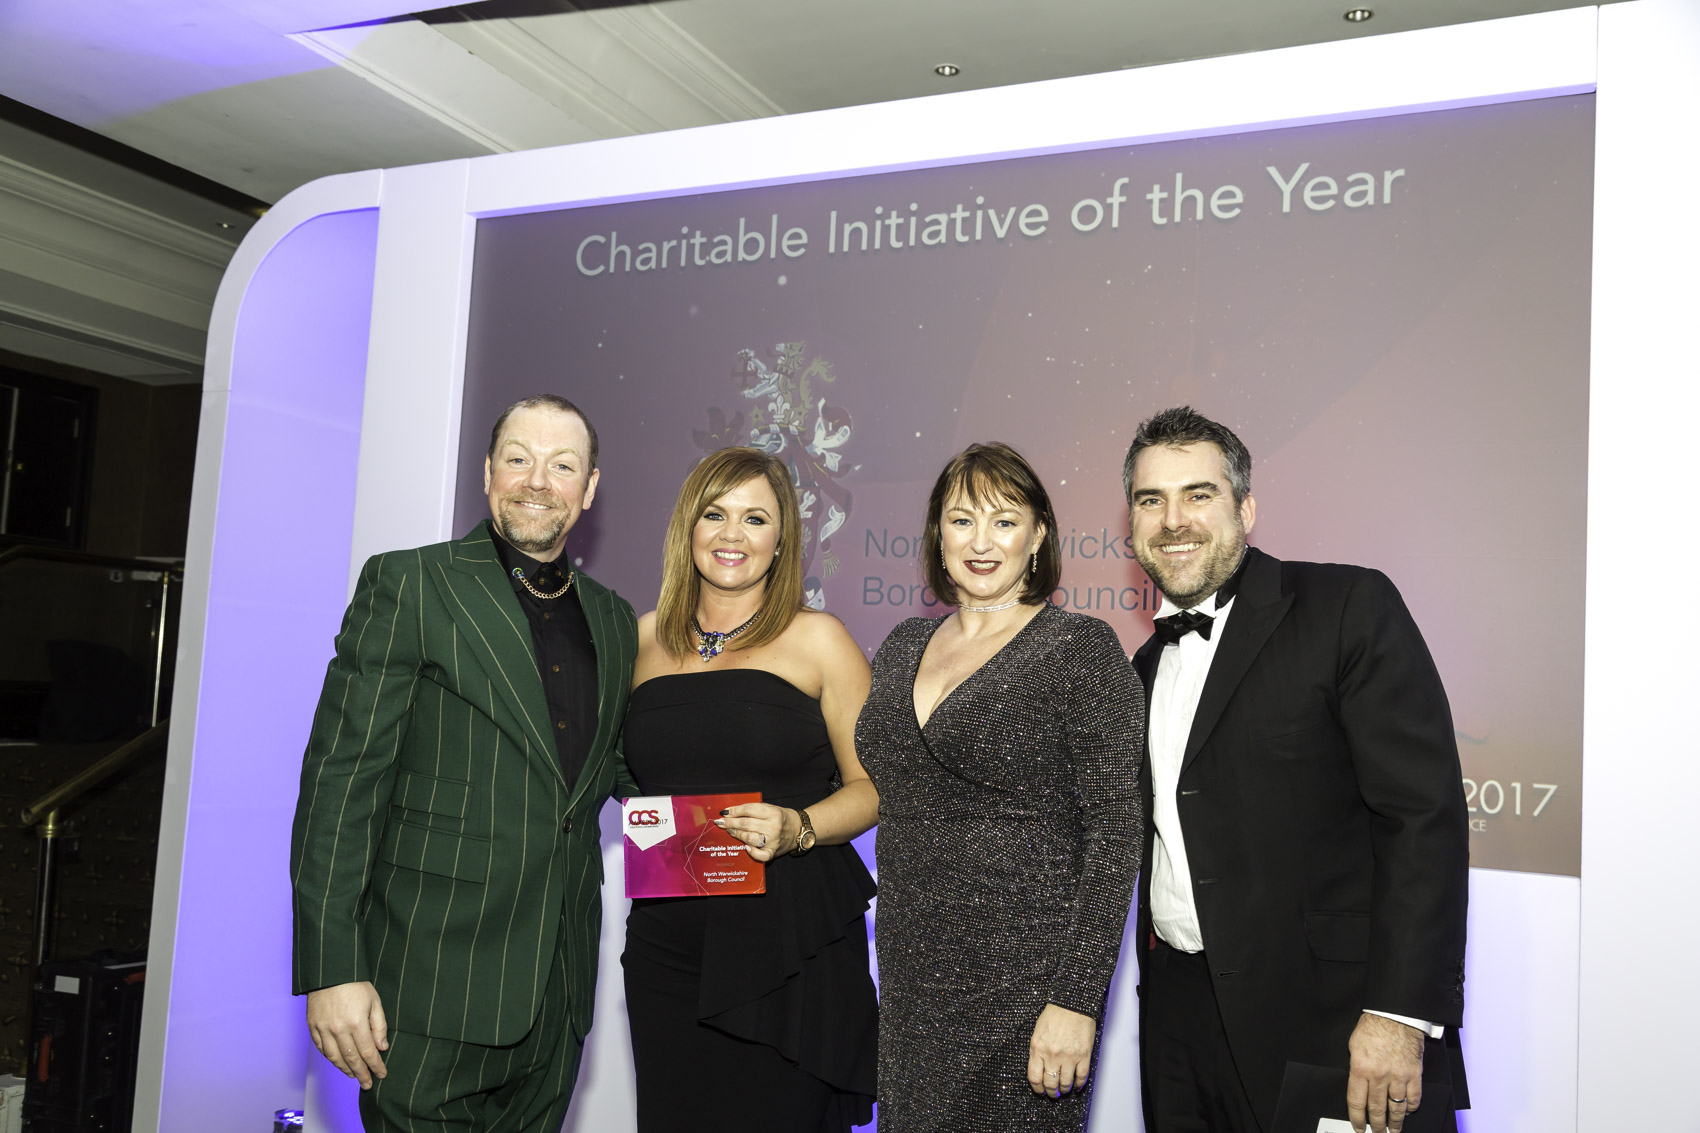 Winners CCS 2017 - 2 Charitable Initiative of the Year